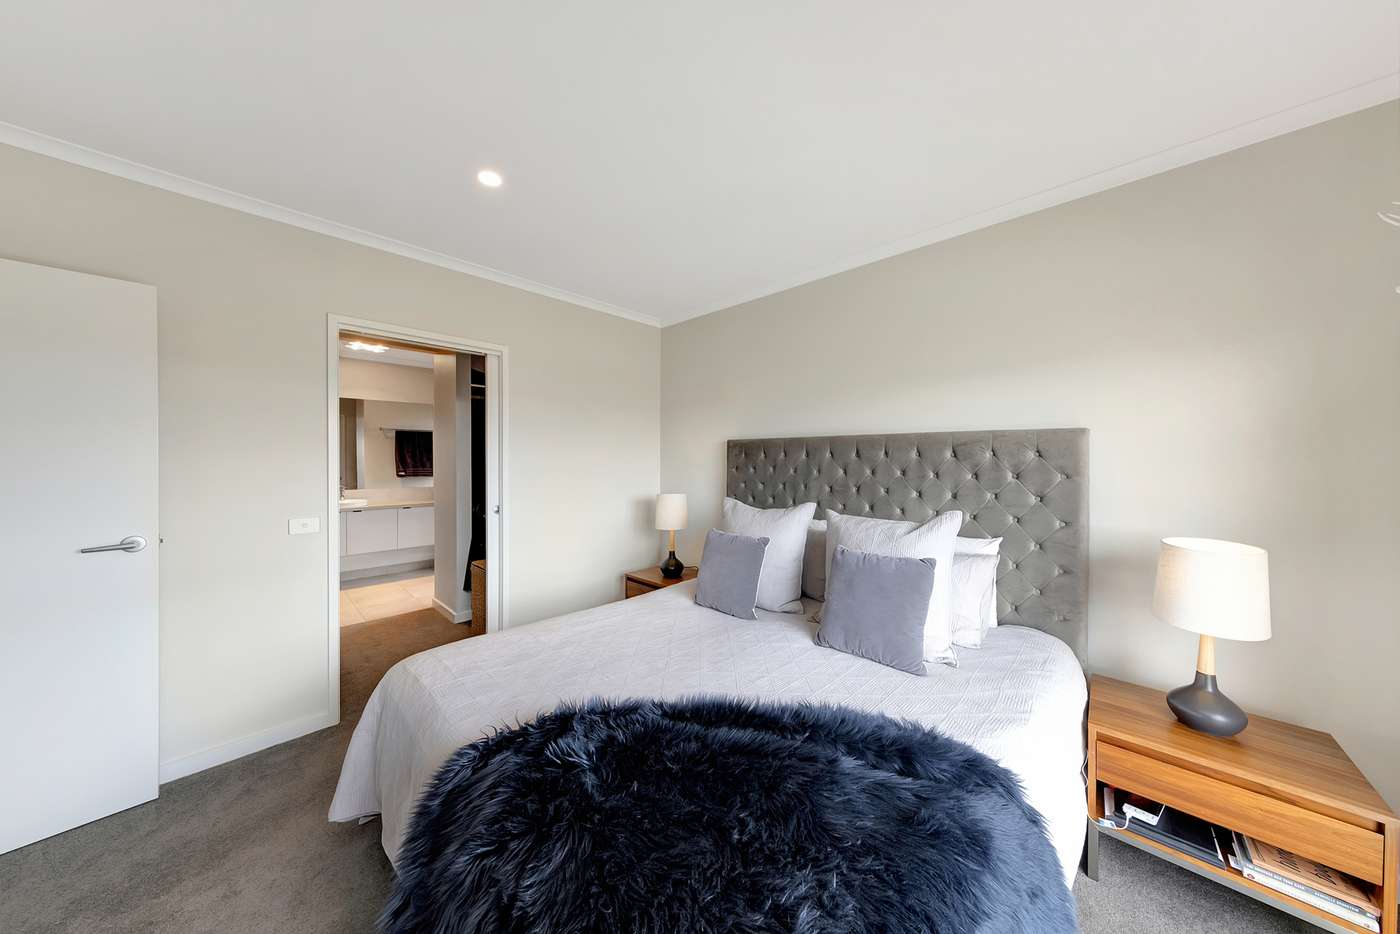 Sixth view of Homely house listing, 9 Gat Sing Way, Warrnambool VIC 3280